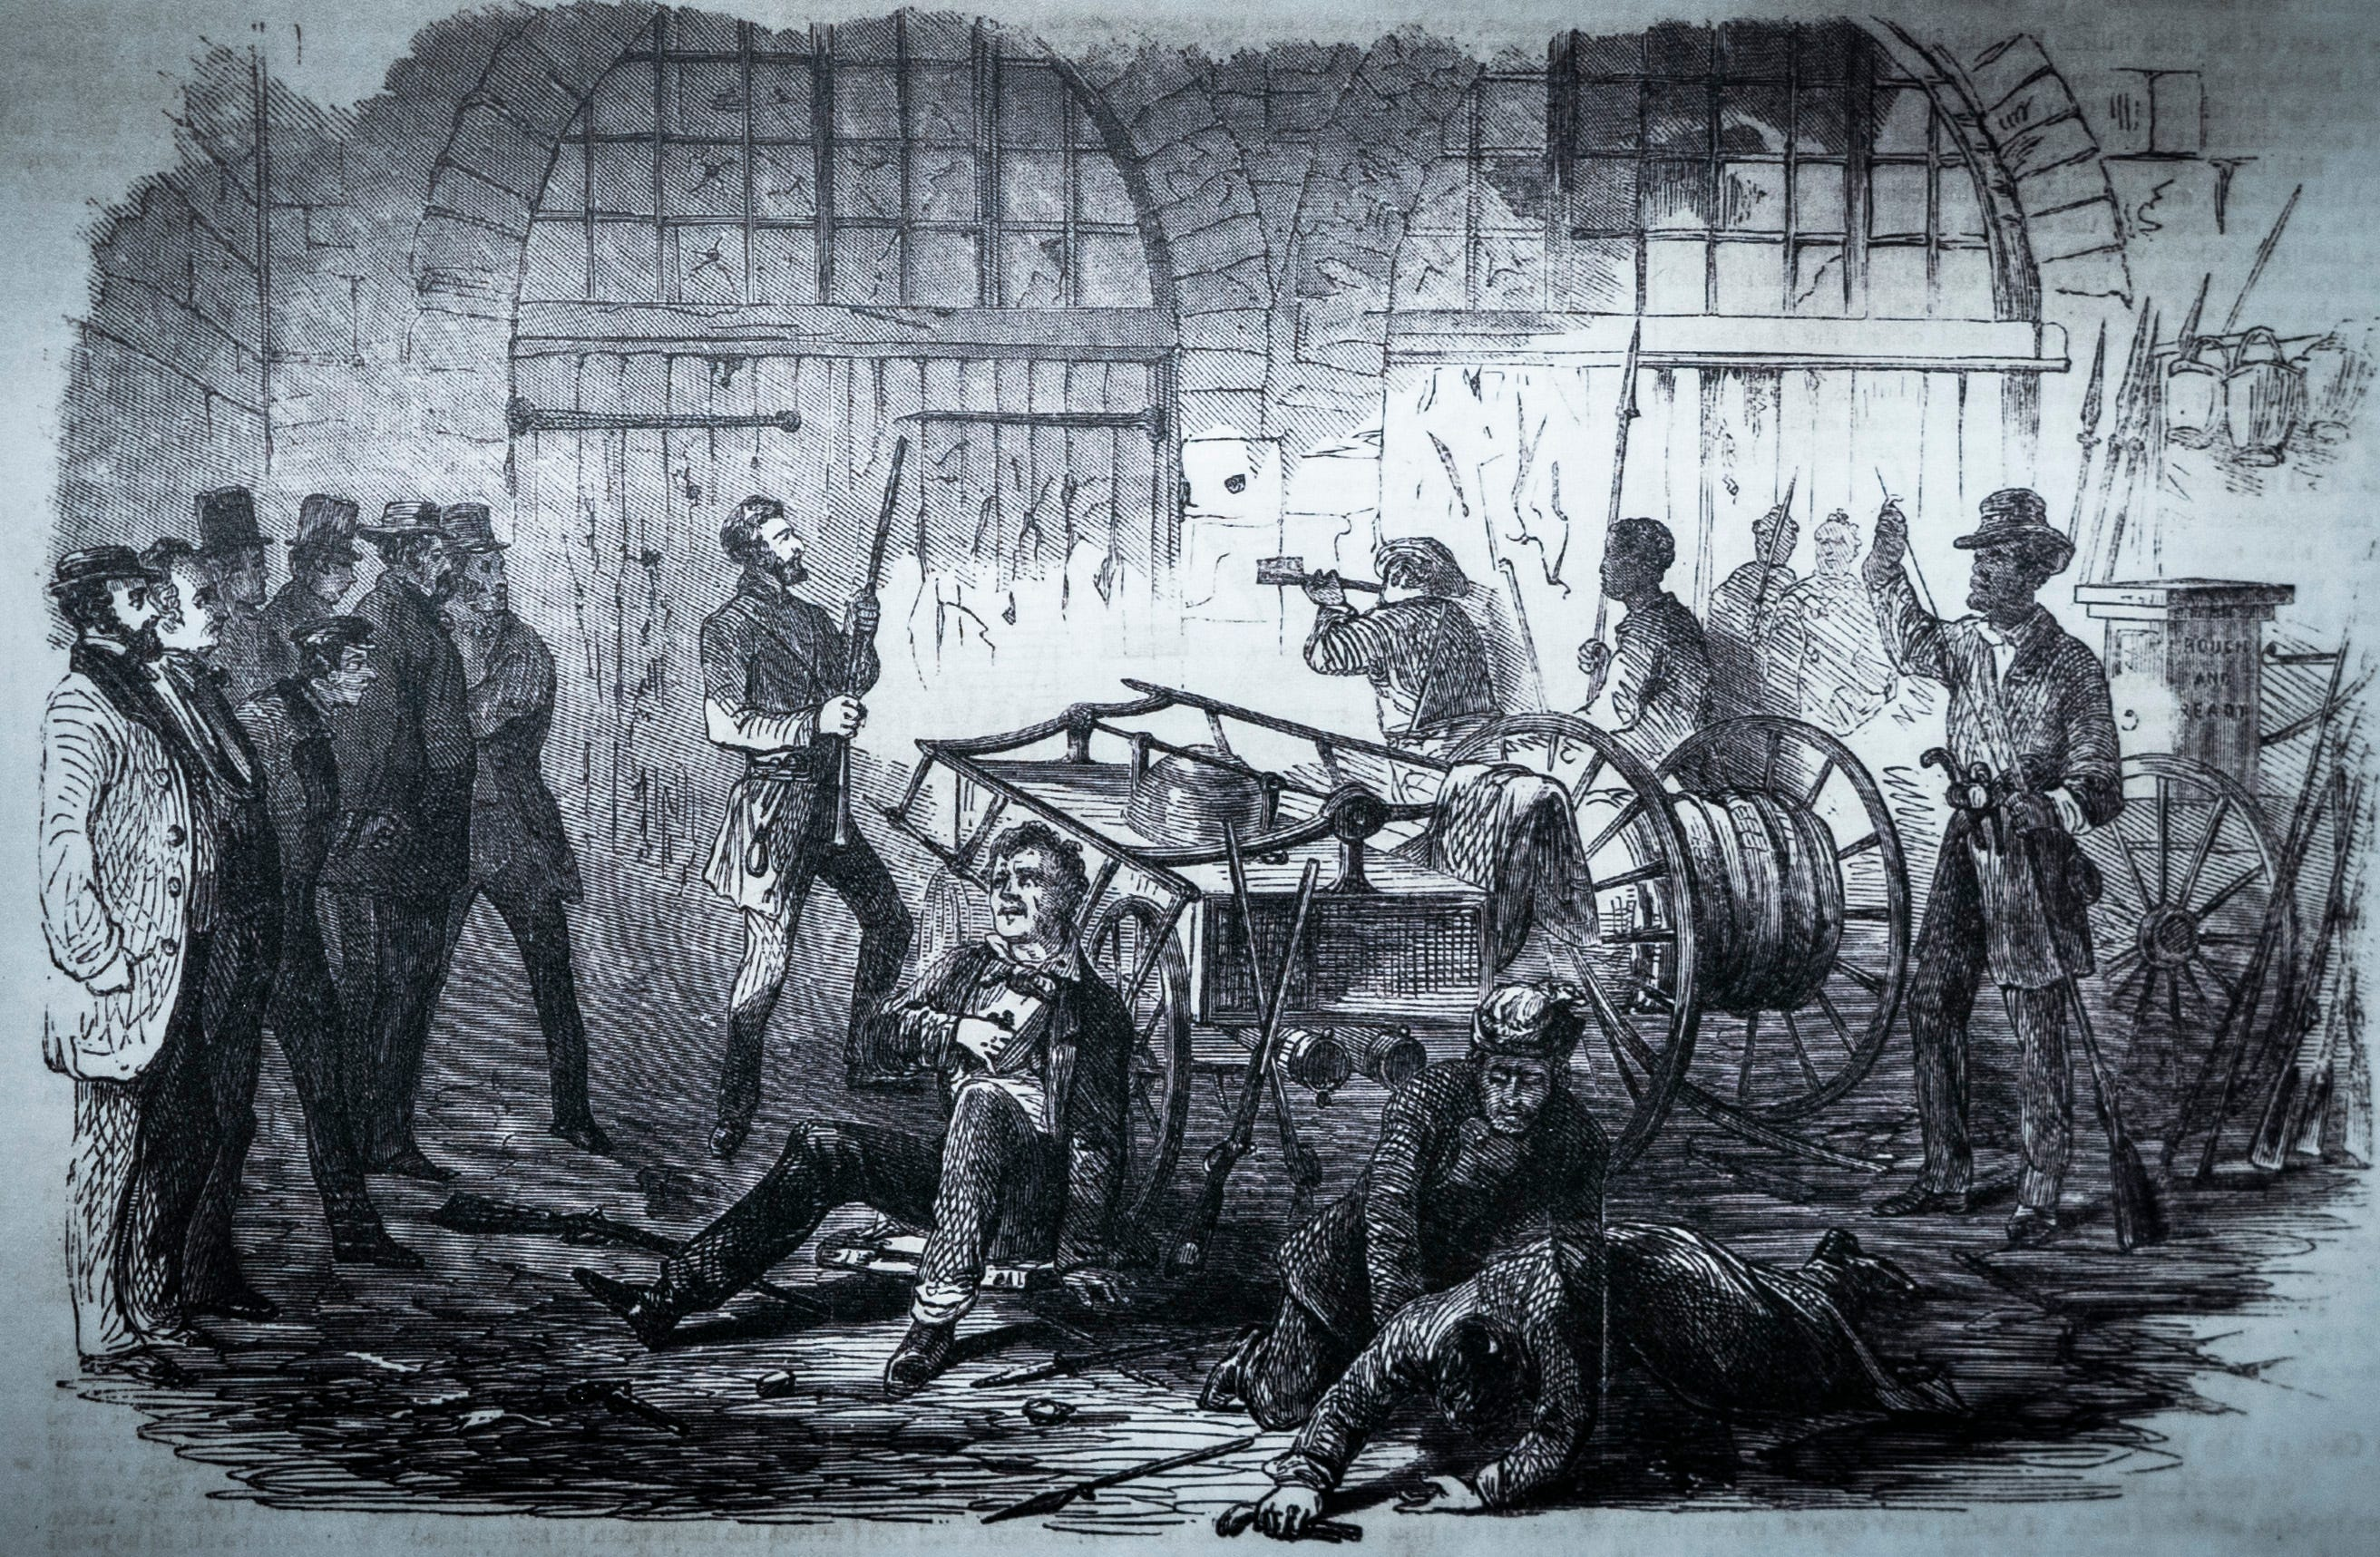 'Harper's Ferry insurrection - interior of the Engine-House' Frank Leslie's illustrated newspapers,1859, from of the library of Congress. The illustration shows John Brown and his men after being surrounded. Seen at the John Brown Farm historic site in North Elba, New York, where Brown is buried. A militant abolitionist, Brown attacked the federal armory on October 16, 1859, in hopes of sparking an armed slave uprising.